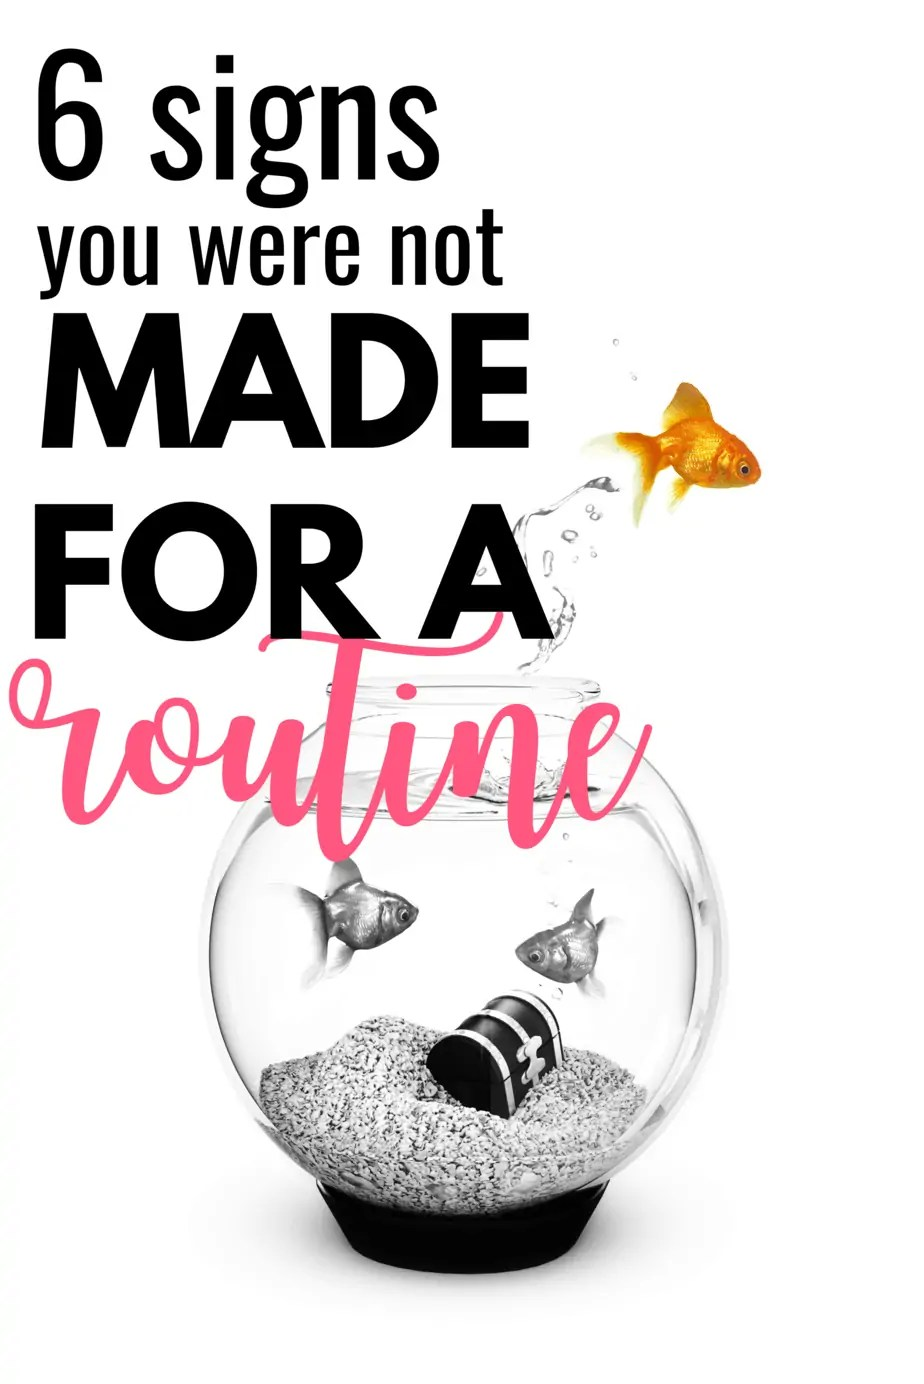 Feeling bored, unmotivated or like pulling out your own hair? You might be stuck in a routine rut that you were never made to be in!